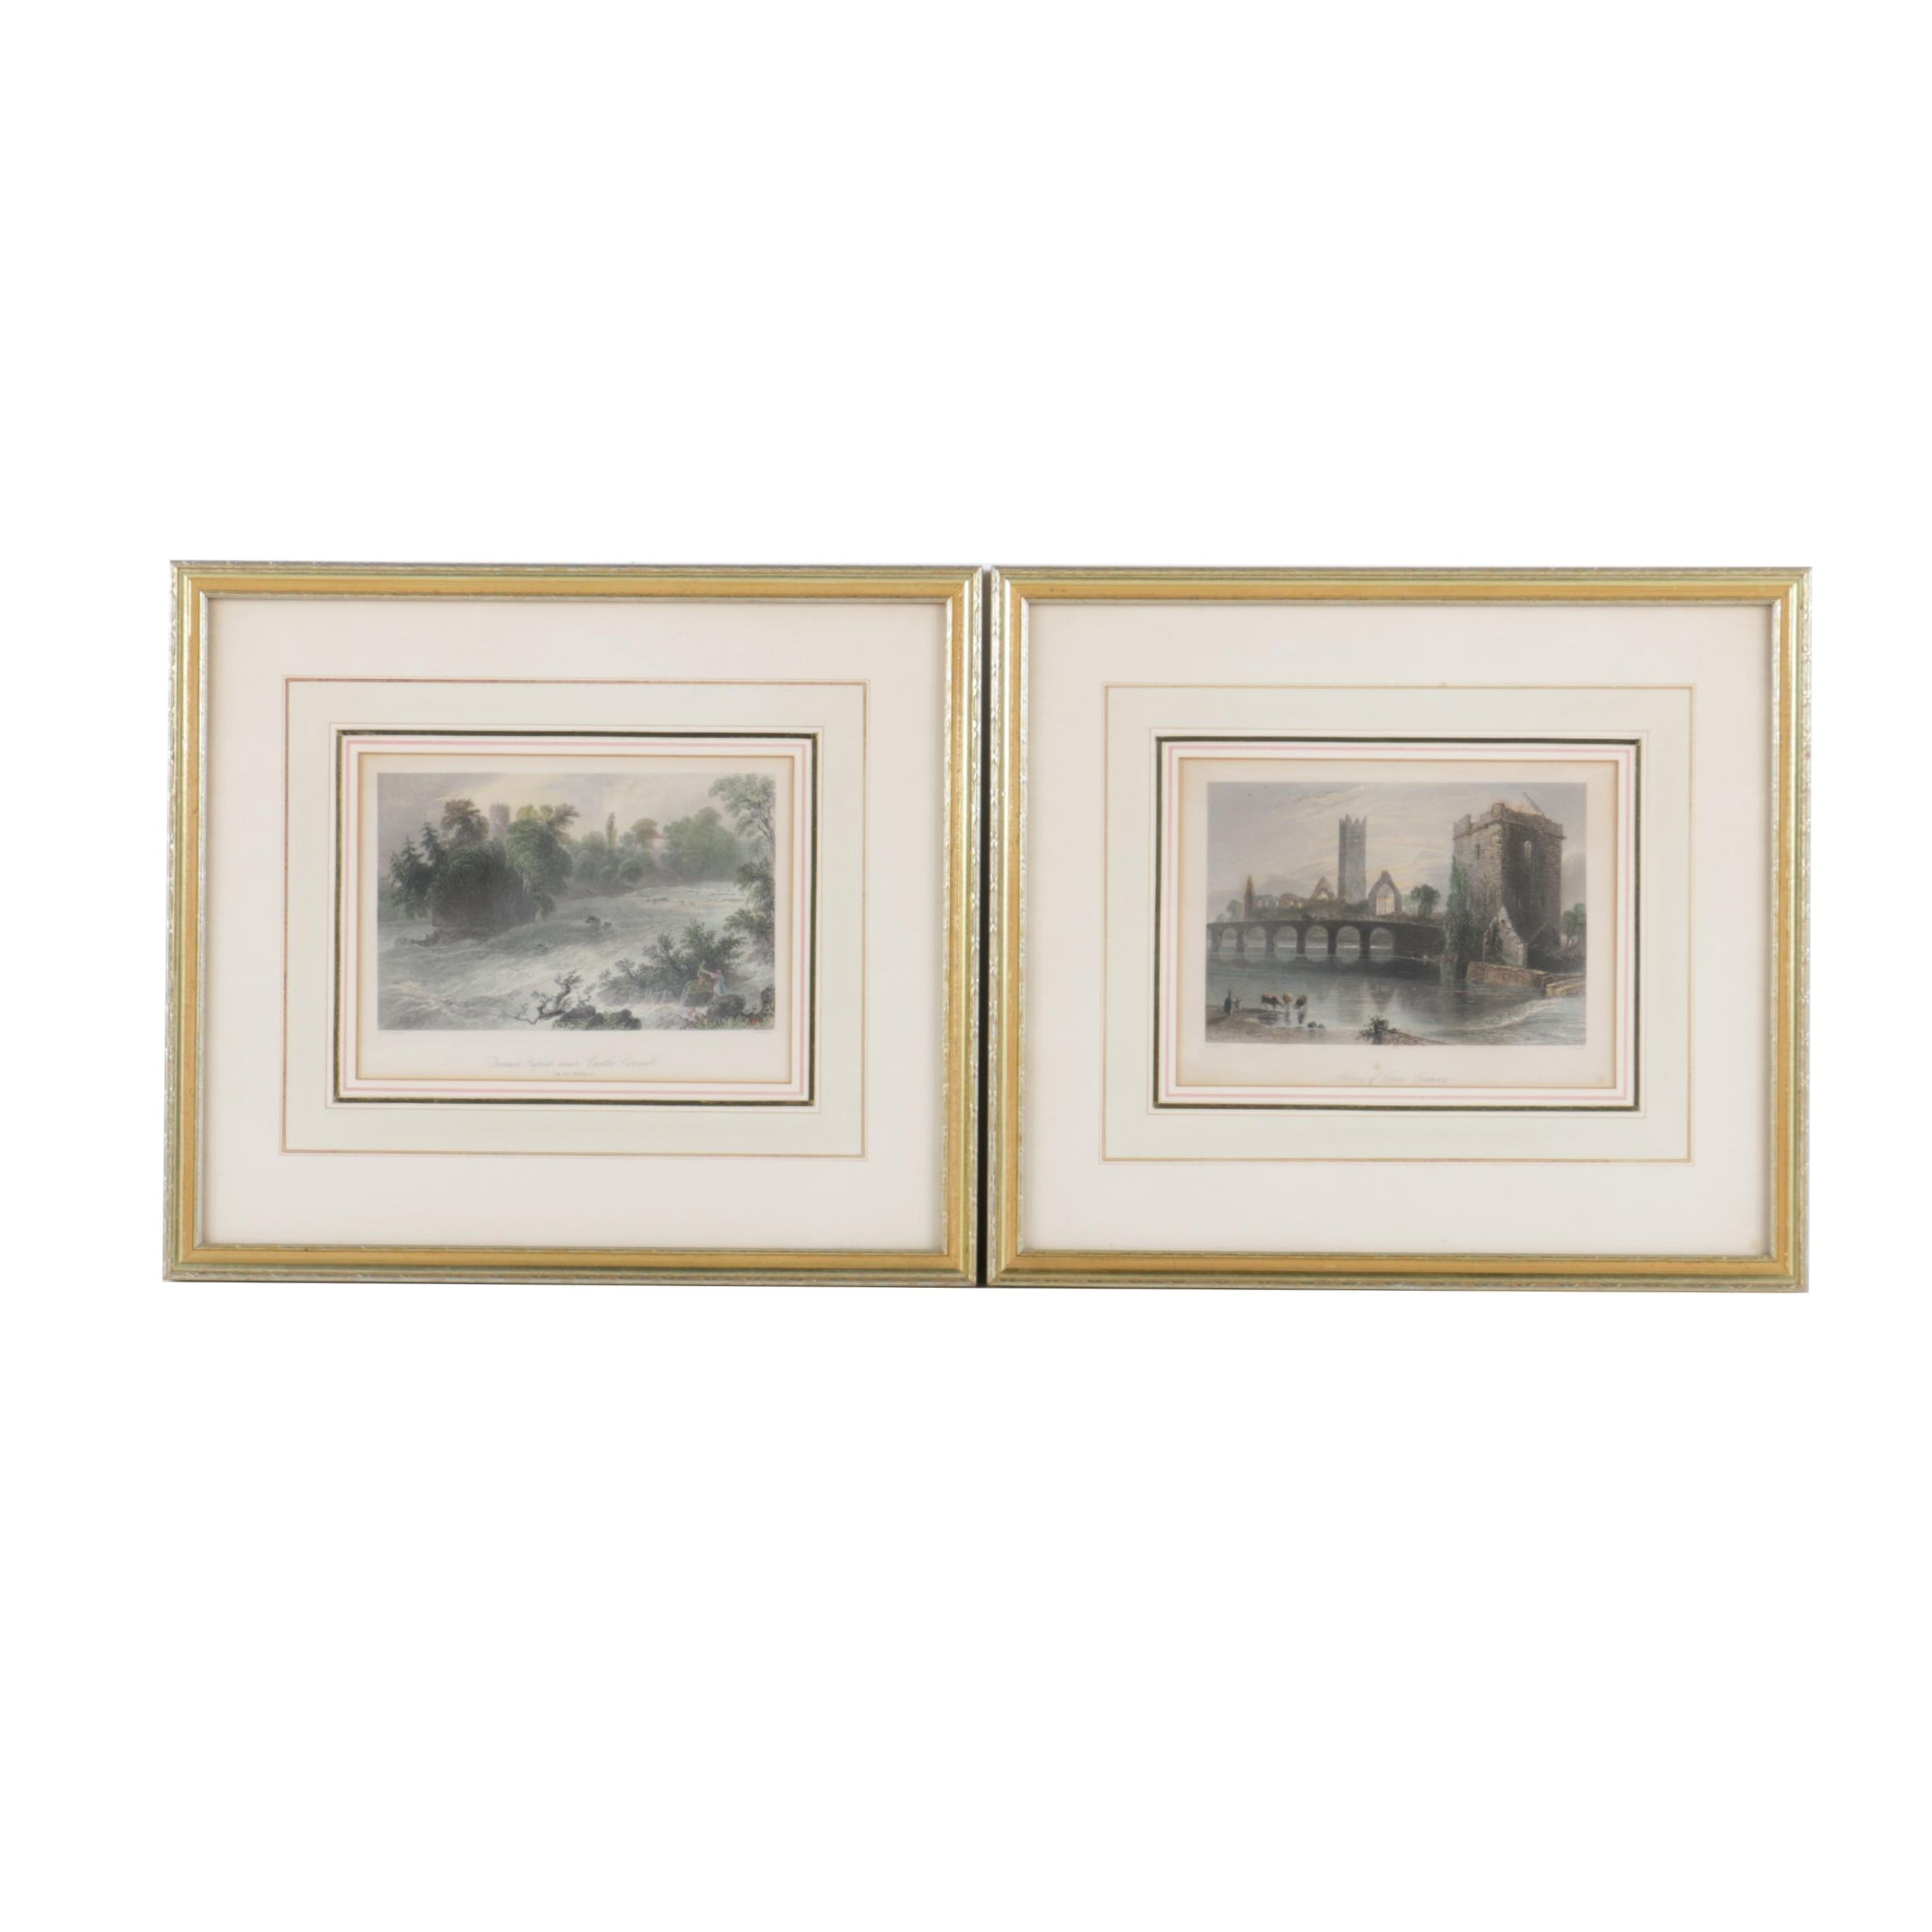 Antique Hand Colored Etchings on Paper of Irish Castle Ruins